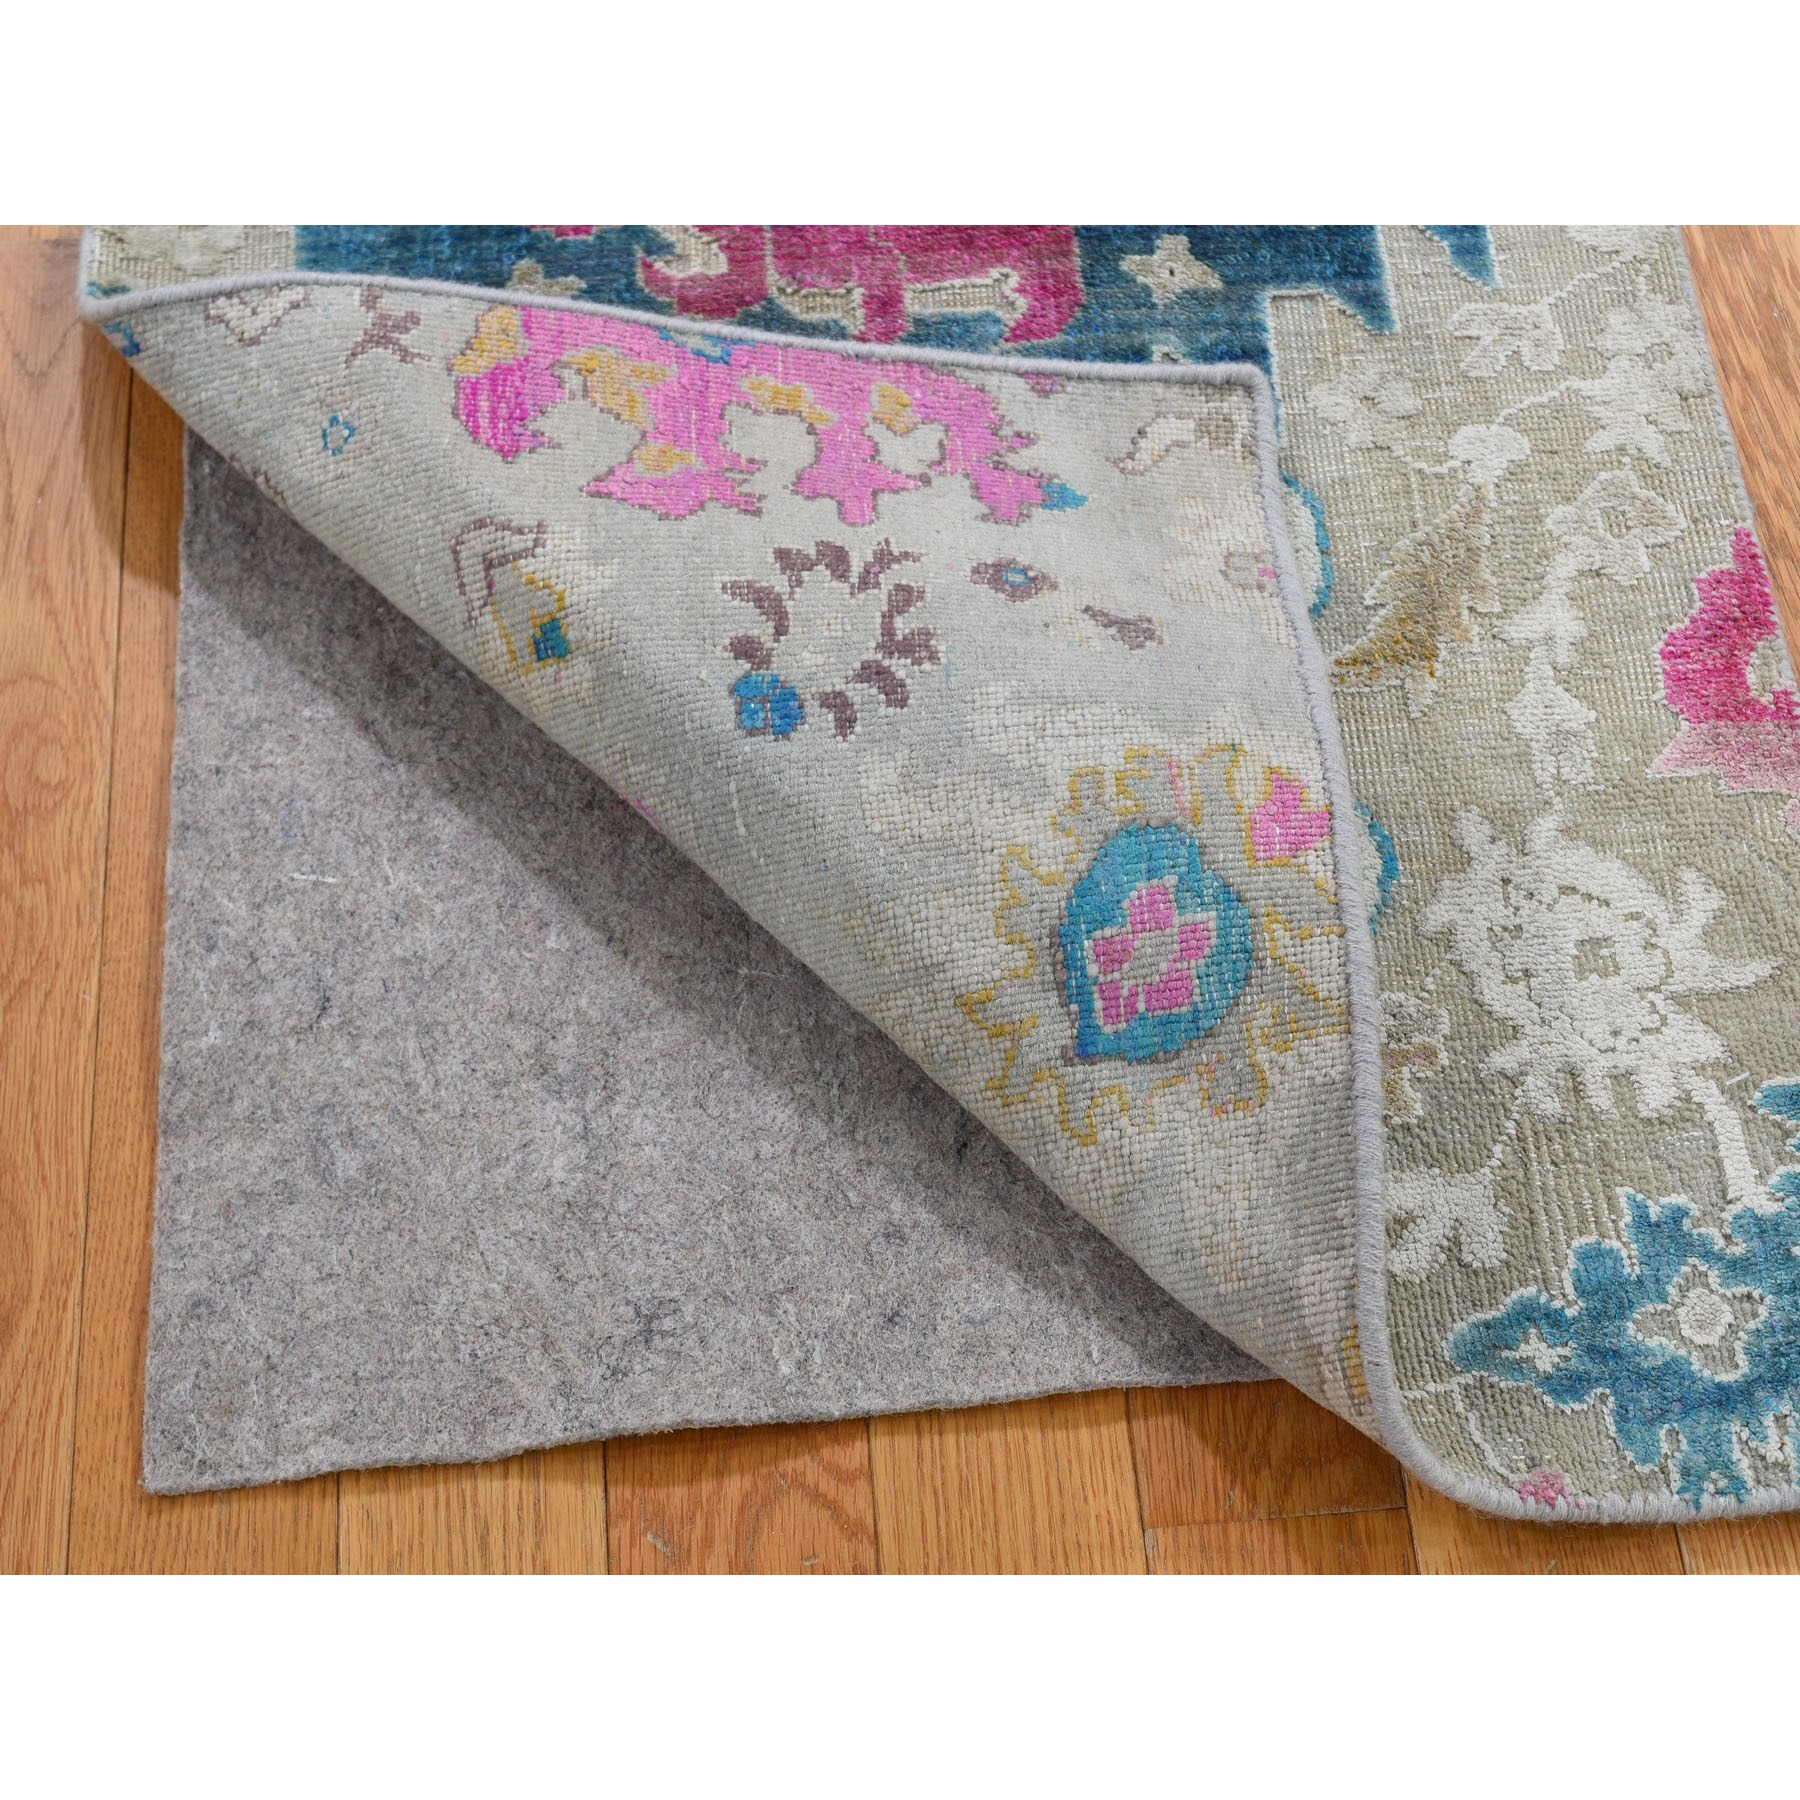 2-x3- Colorful Sari Silk With Textured Wool Hand Knotted Oushak Influence Rug